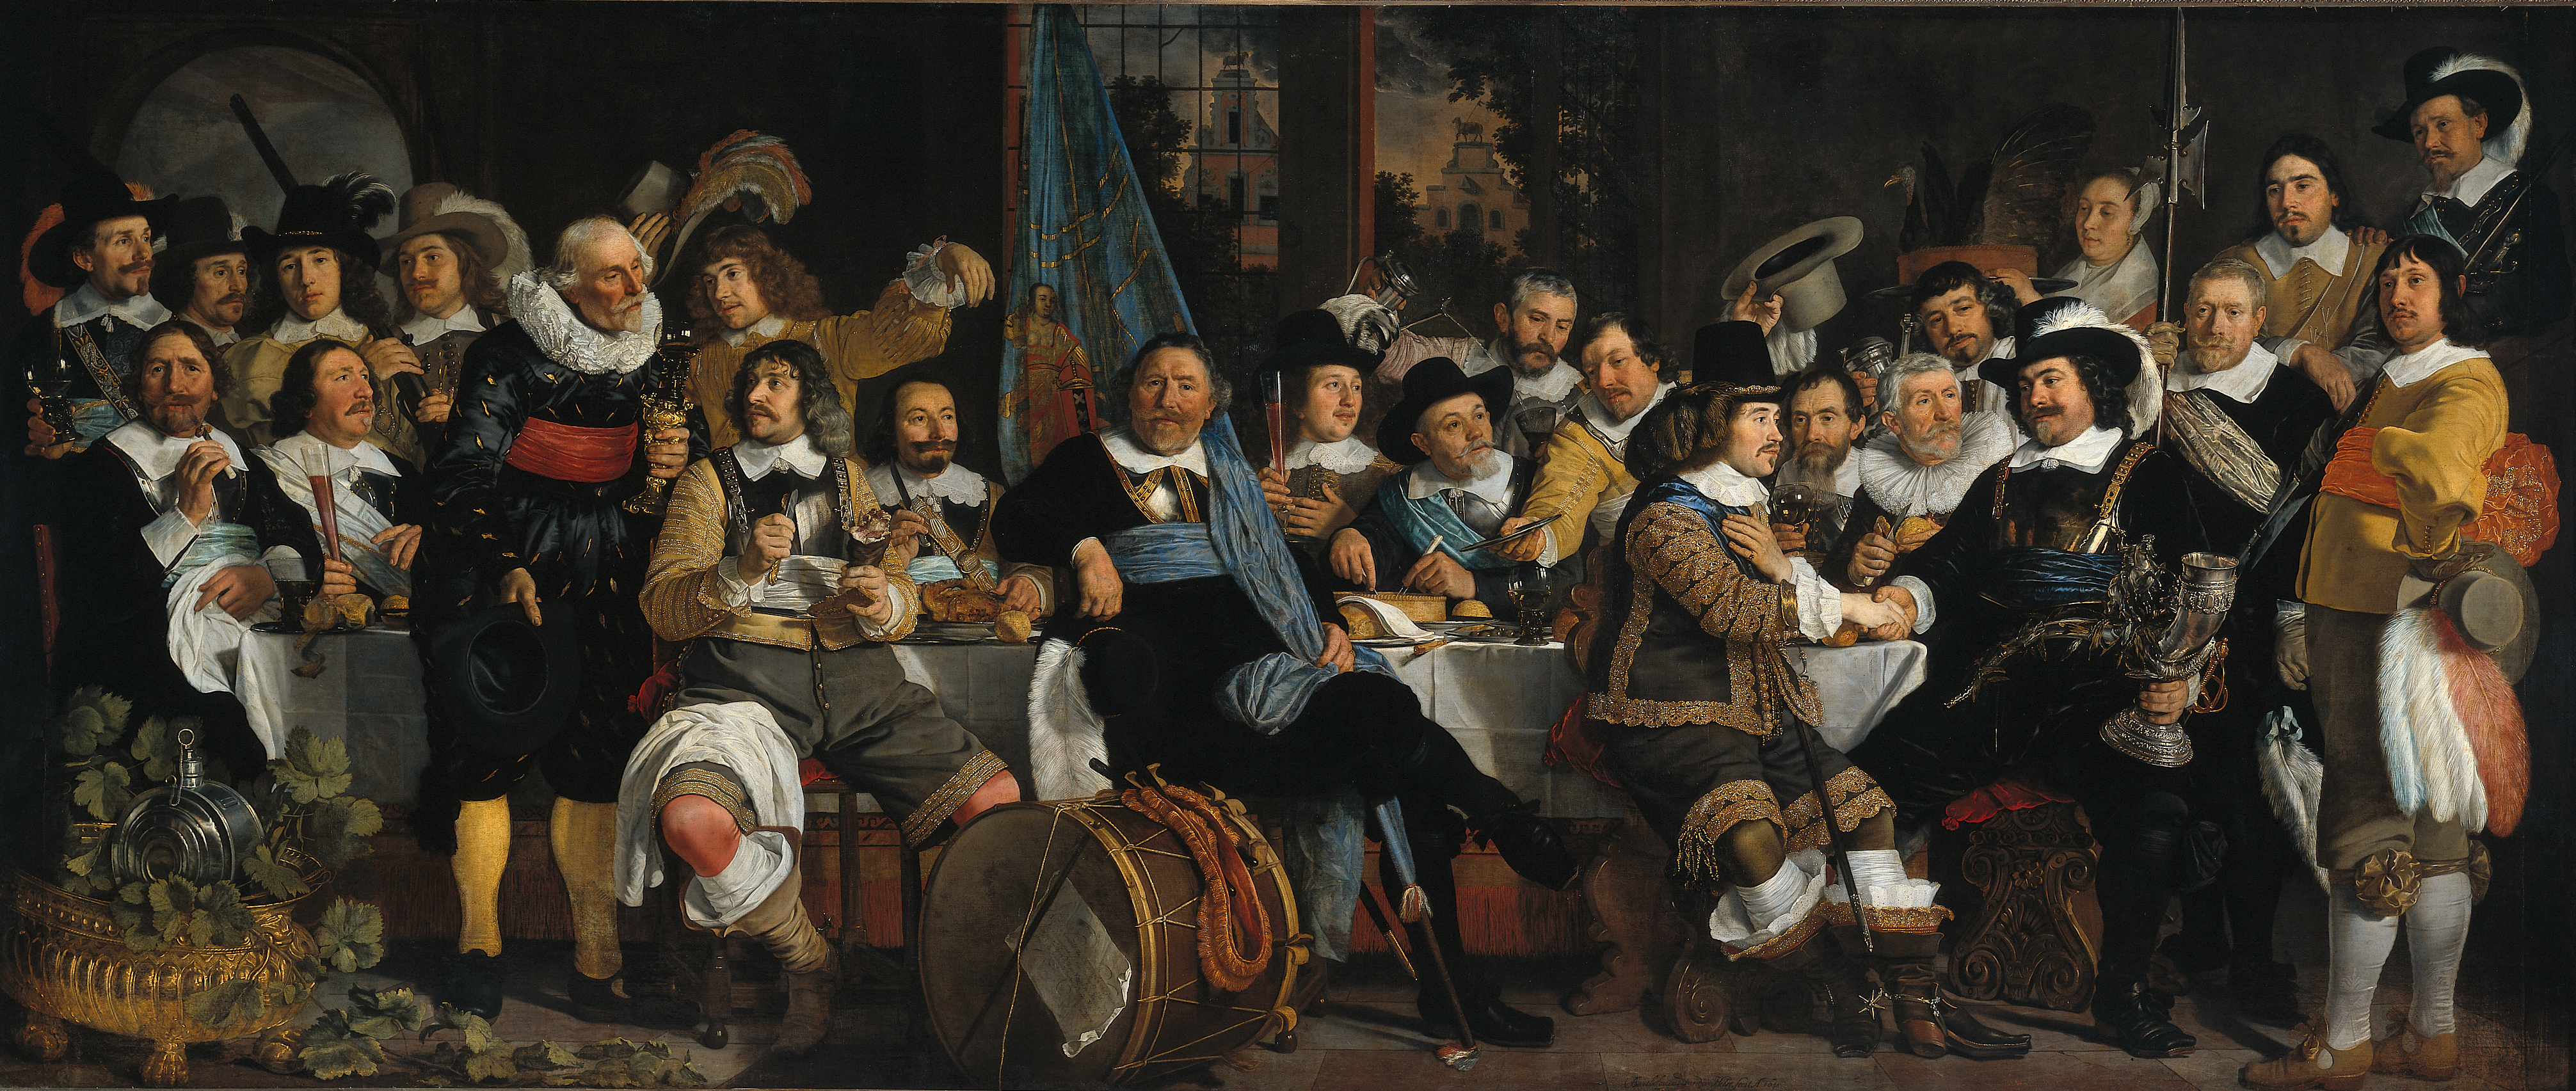 Bartholomeus_van_der_Helst,_Banquet_of_the_Amsterdam_Civic_Guard_in_Celebration_of_the_Peace_of_M%C3%BCnster.jpg